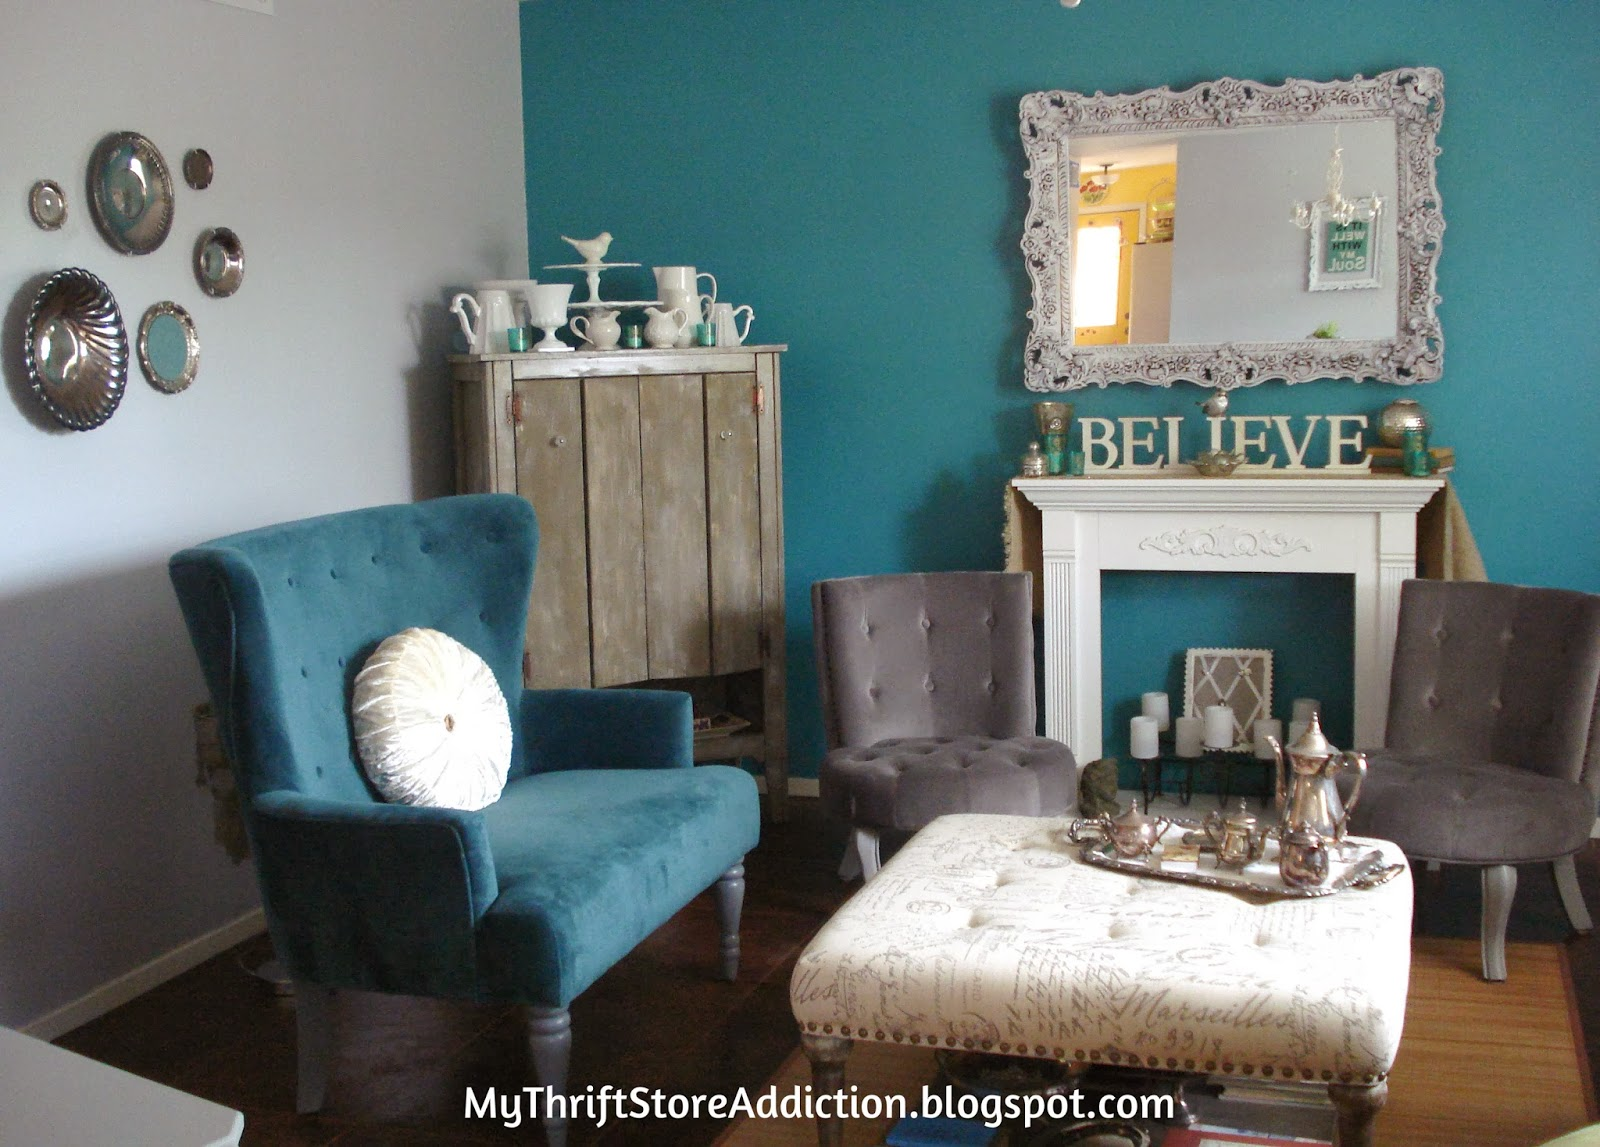 gray and turquoise living room ideas with tv in the corner my thrift store addiction refresh your home